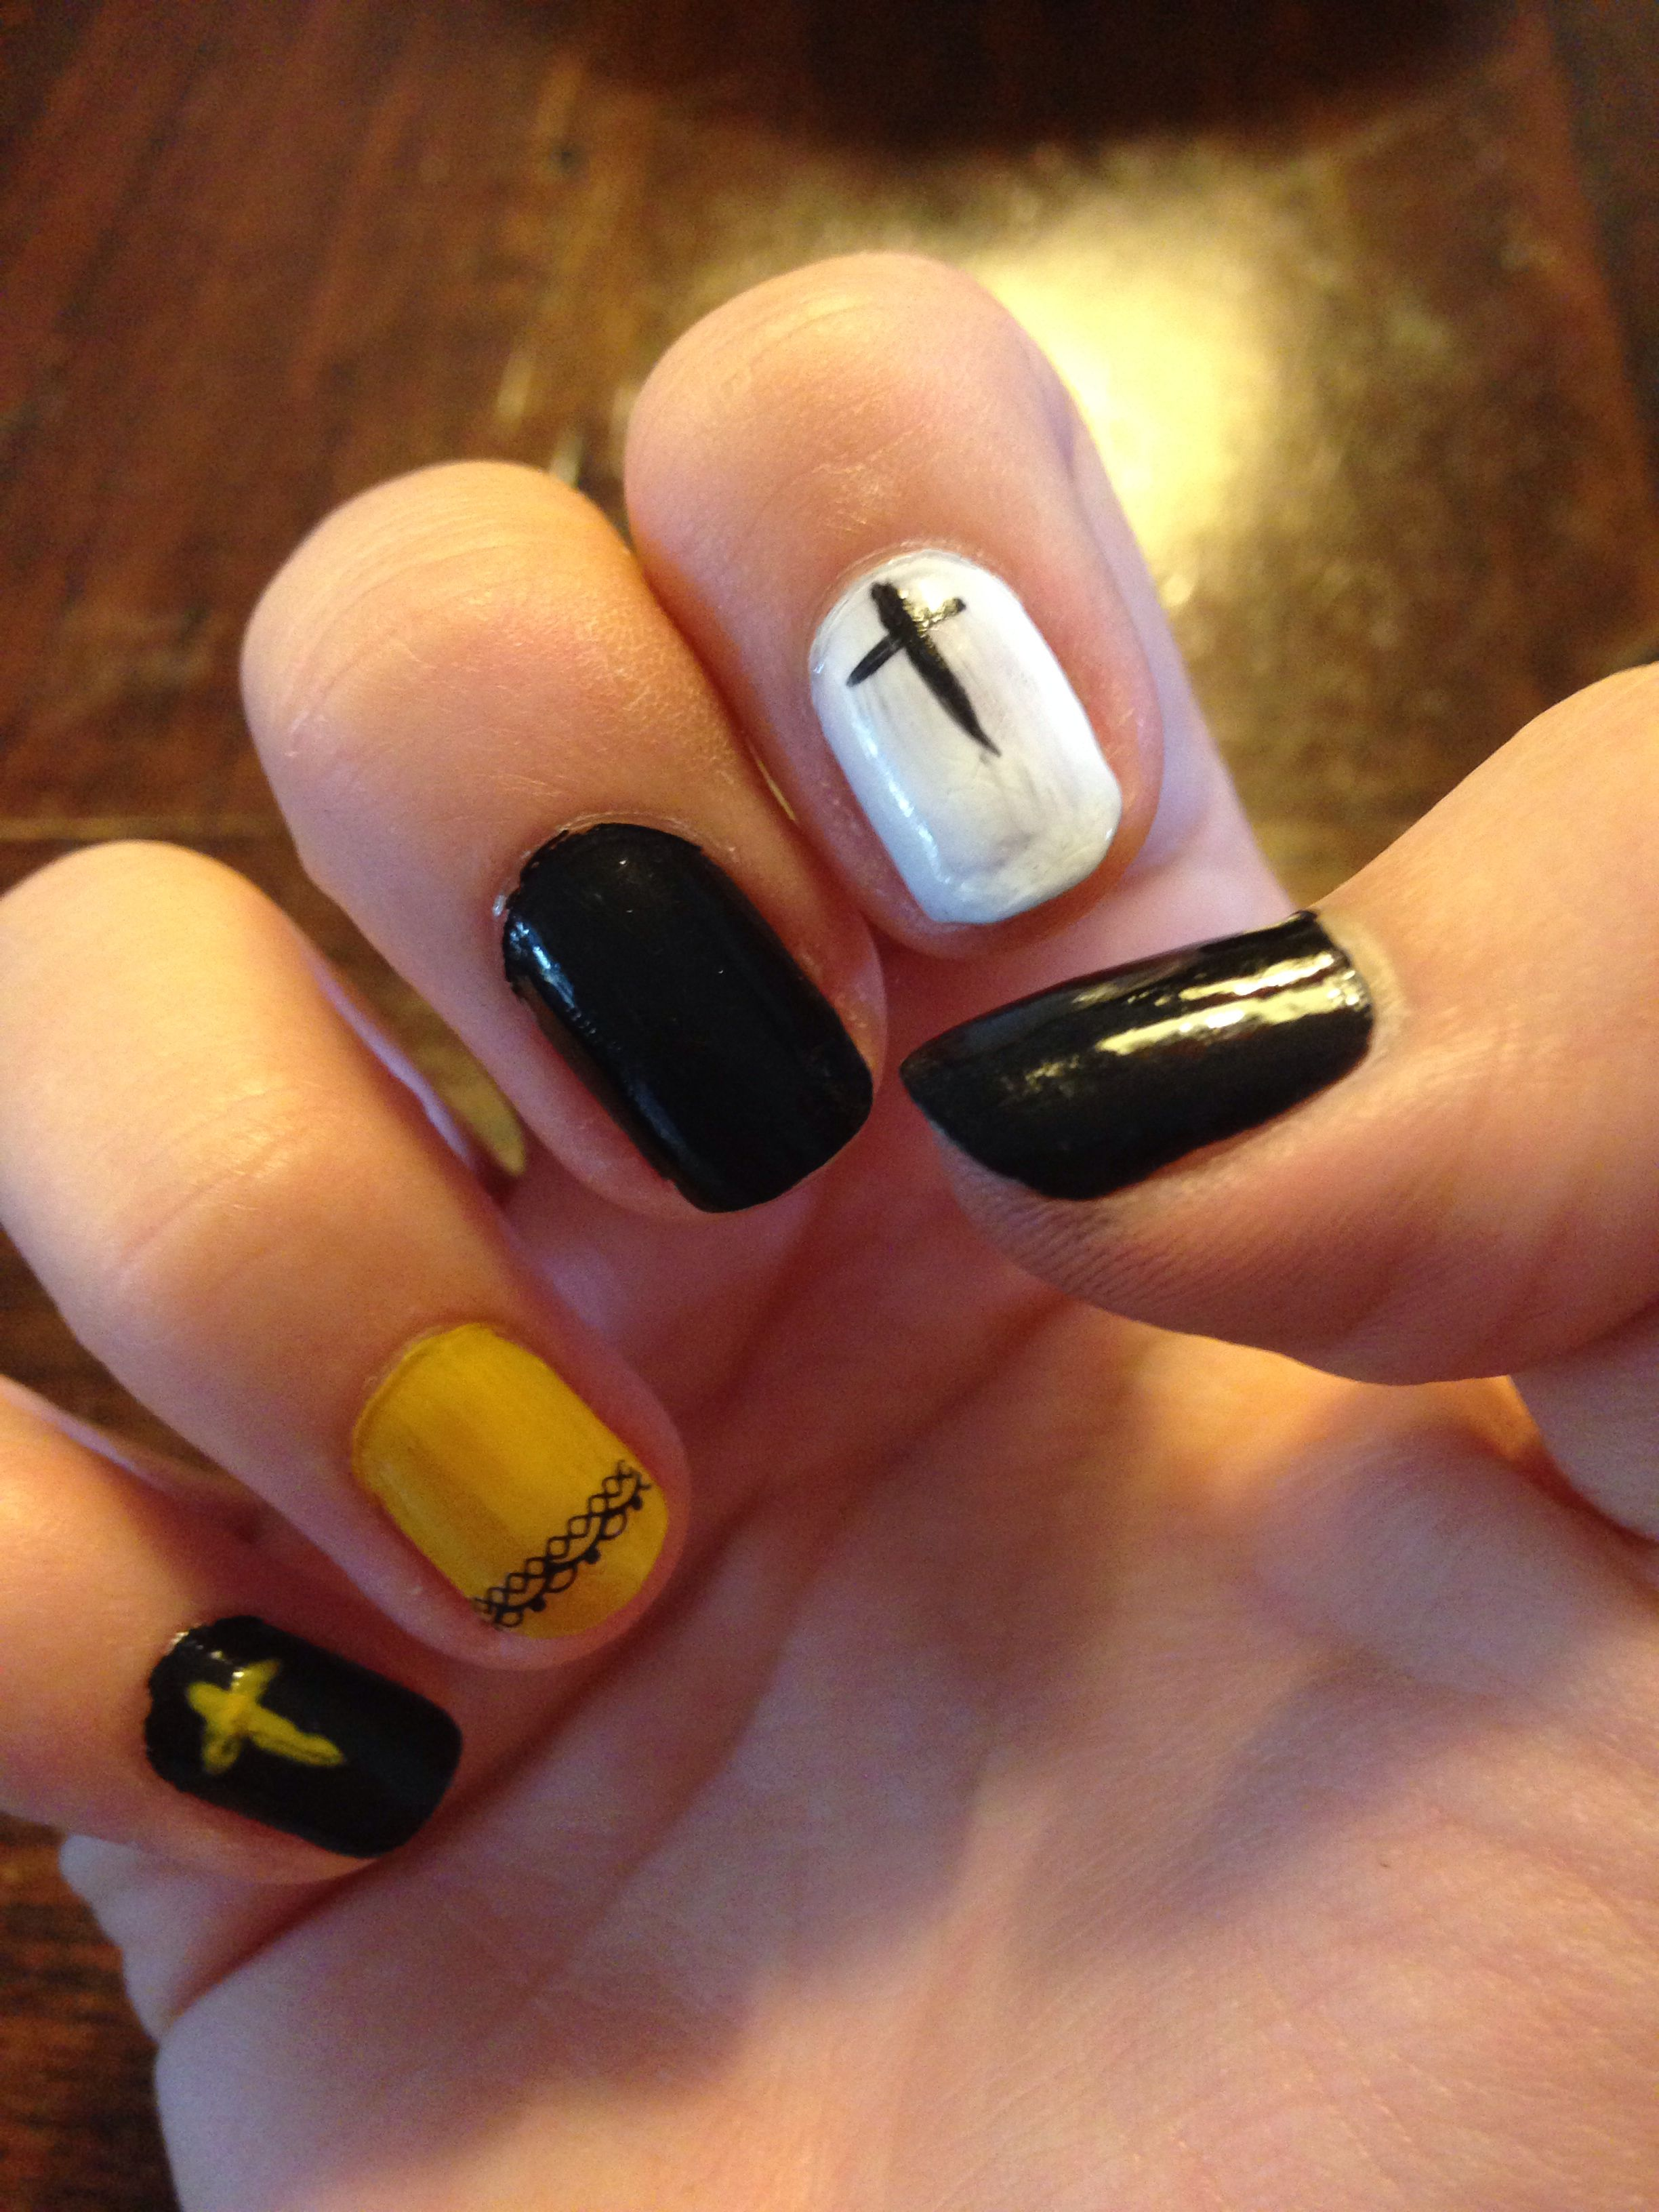 Other hand